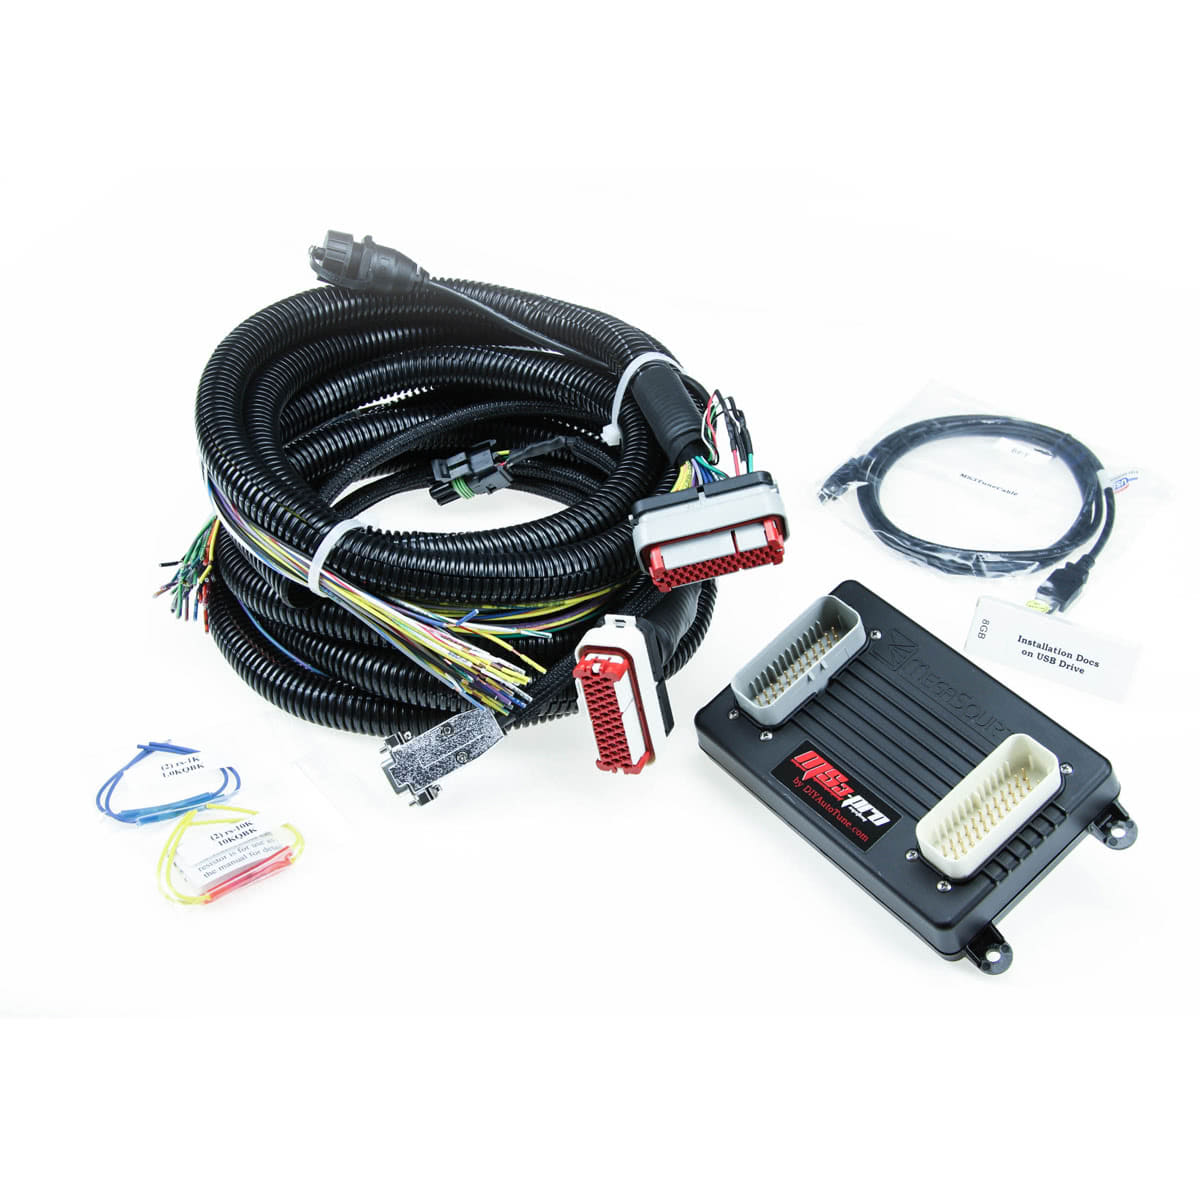 MS3Pro Pkg1_3 ms3pro evo standalone ecu with 8' wiring harness 2jz standalone wiring harness at edmiracle.co